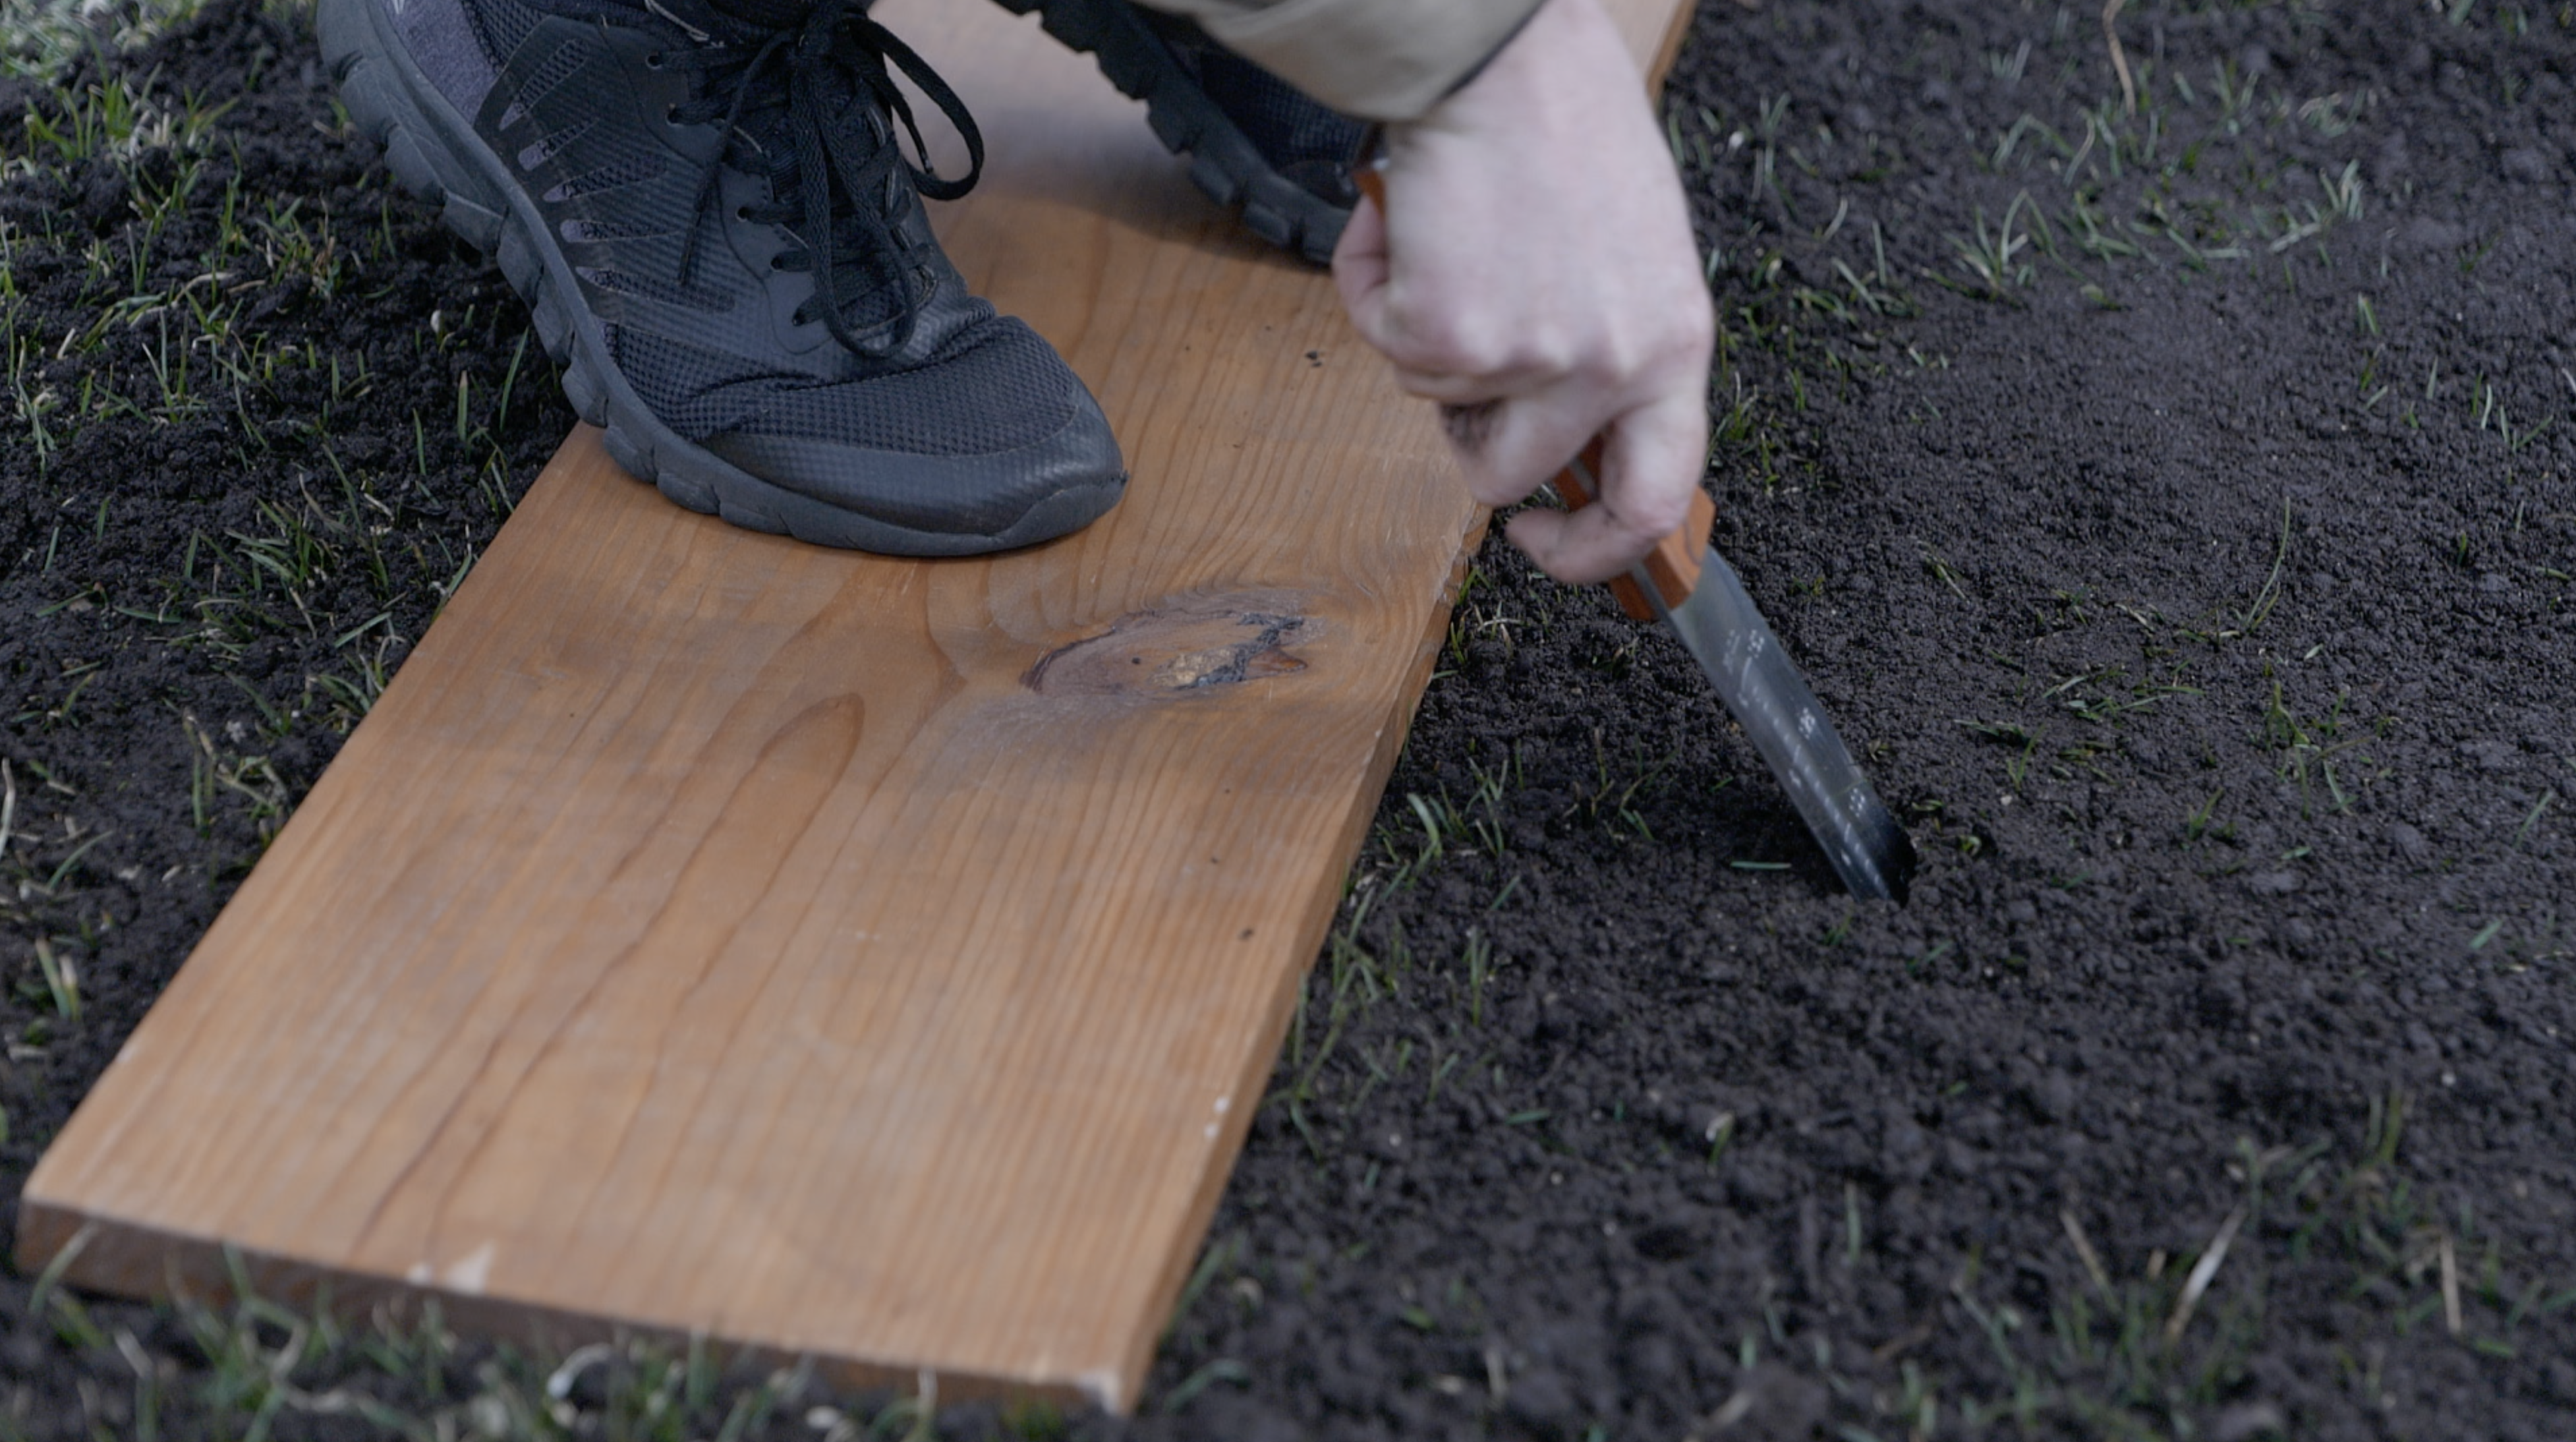 person standing on wooden board in garden bed starting to dig a hole